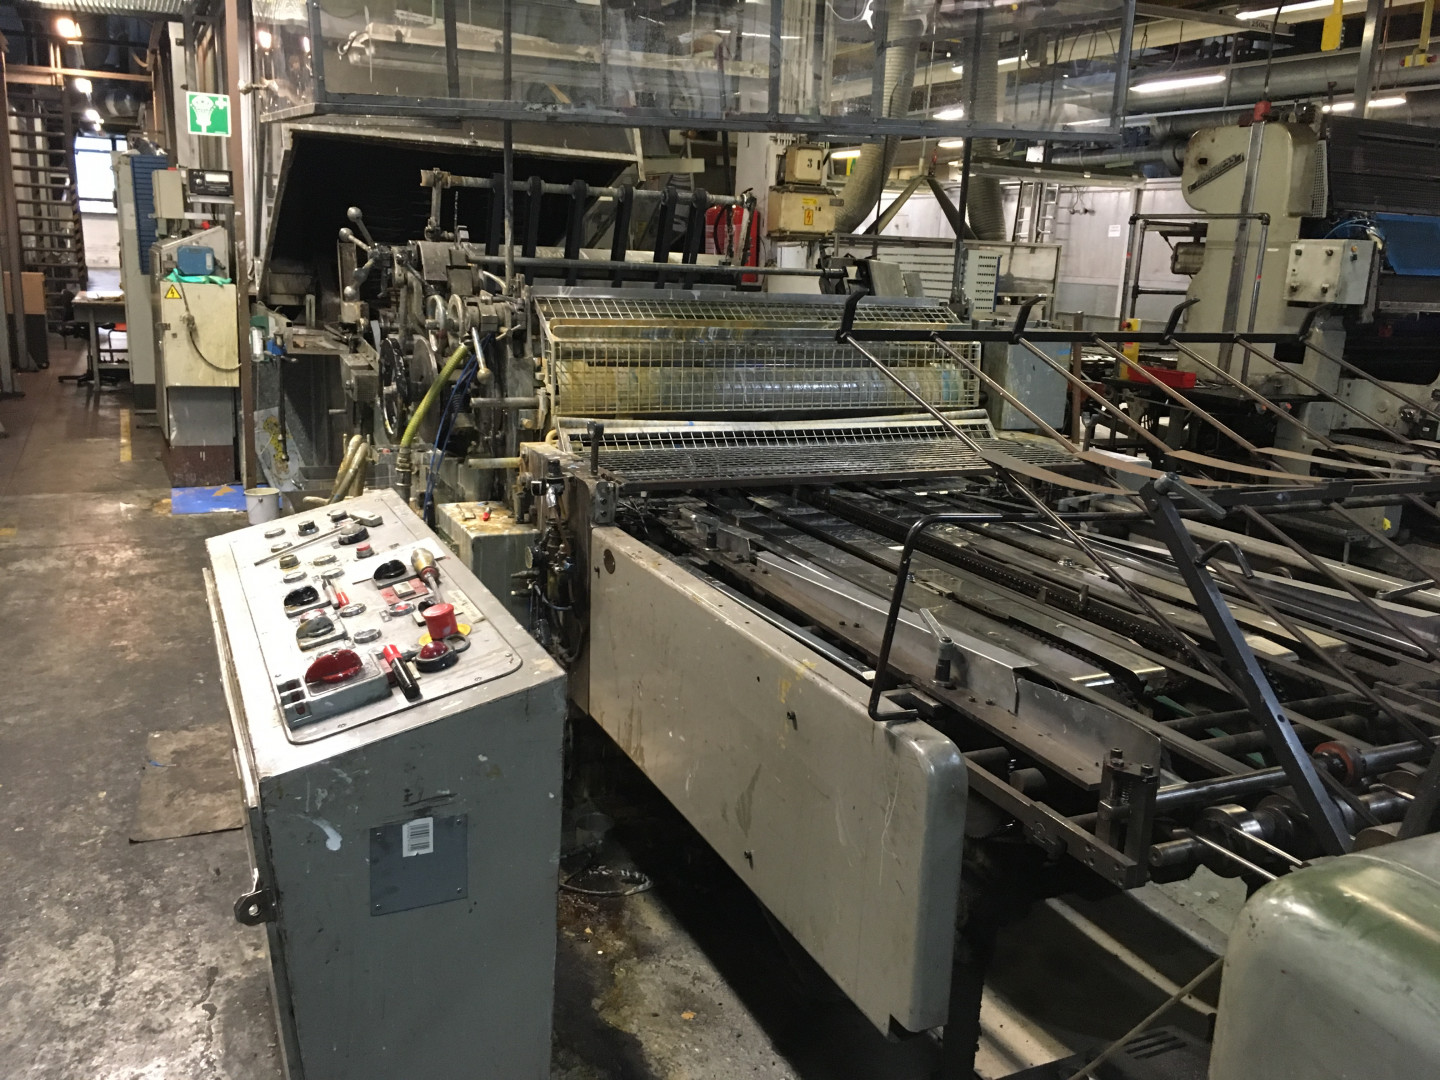 Mailander 460 varnish coating machine - sheet feeder